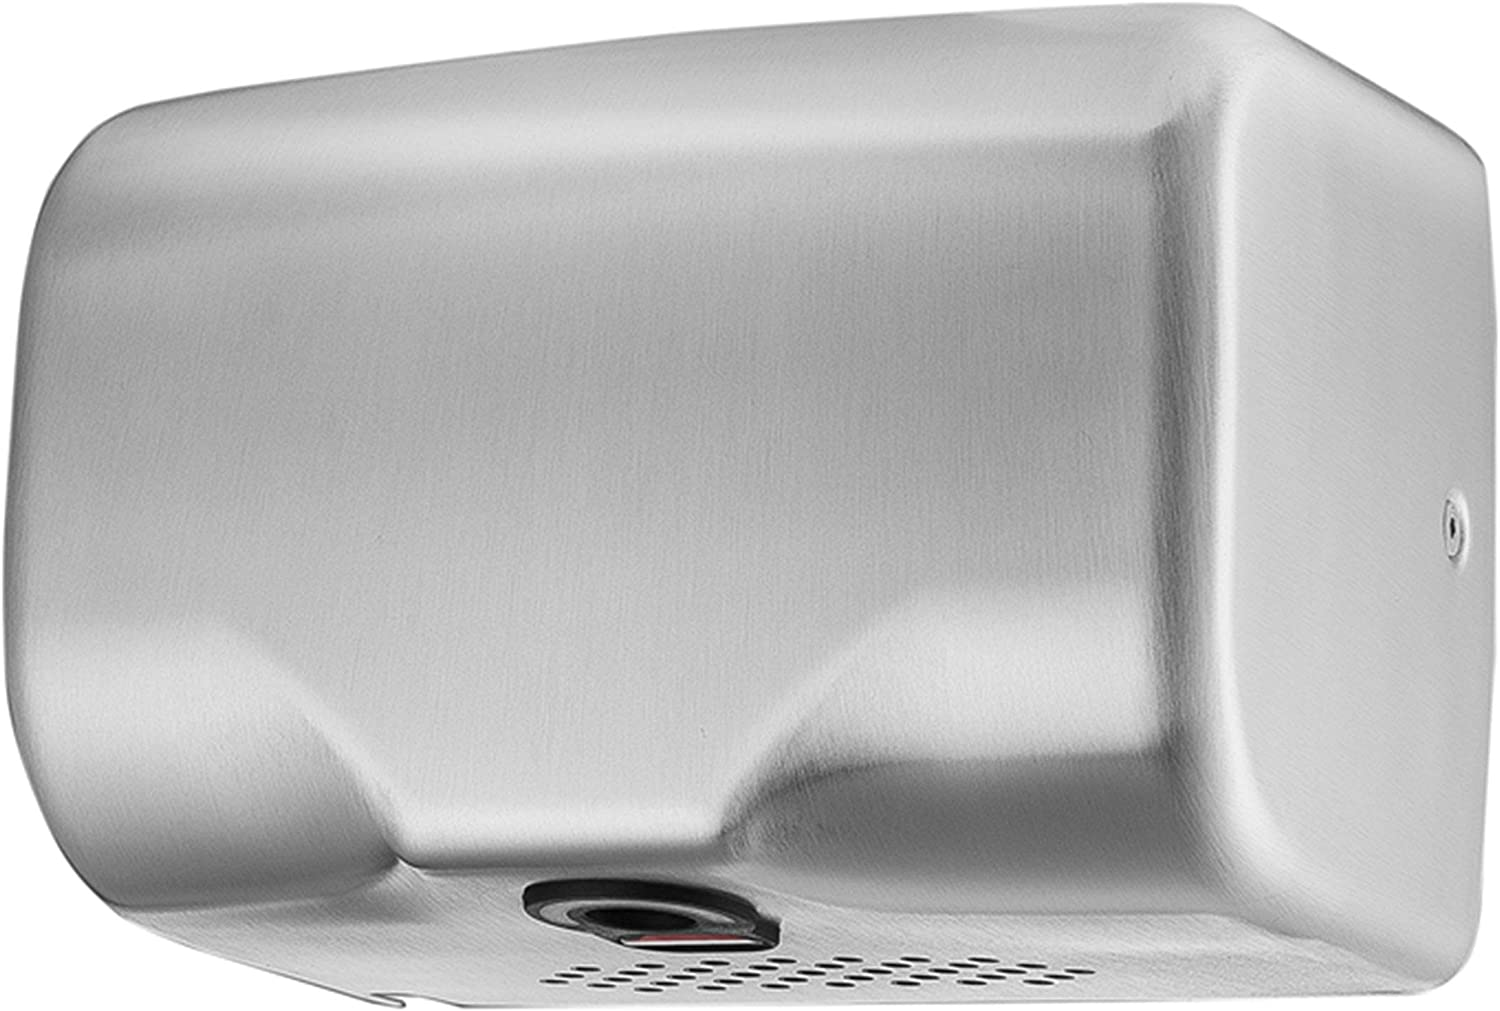 Quantity limited ASIALEO Commercial Hand Dryer Automatic Electric Great interest High Speed